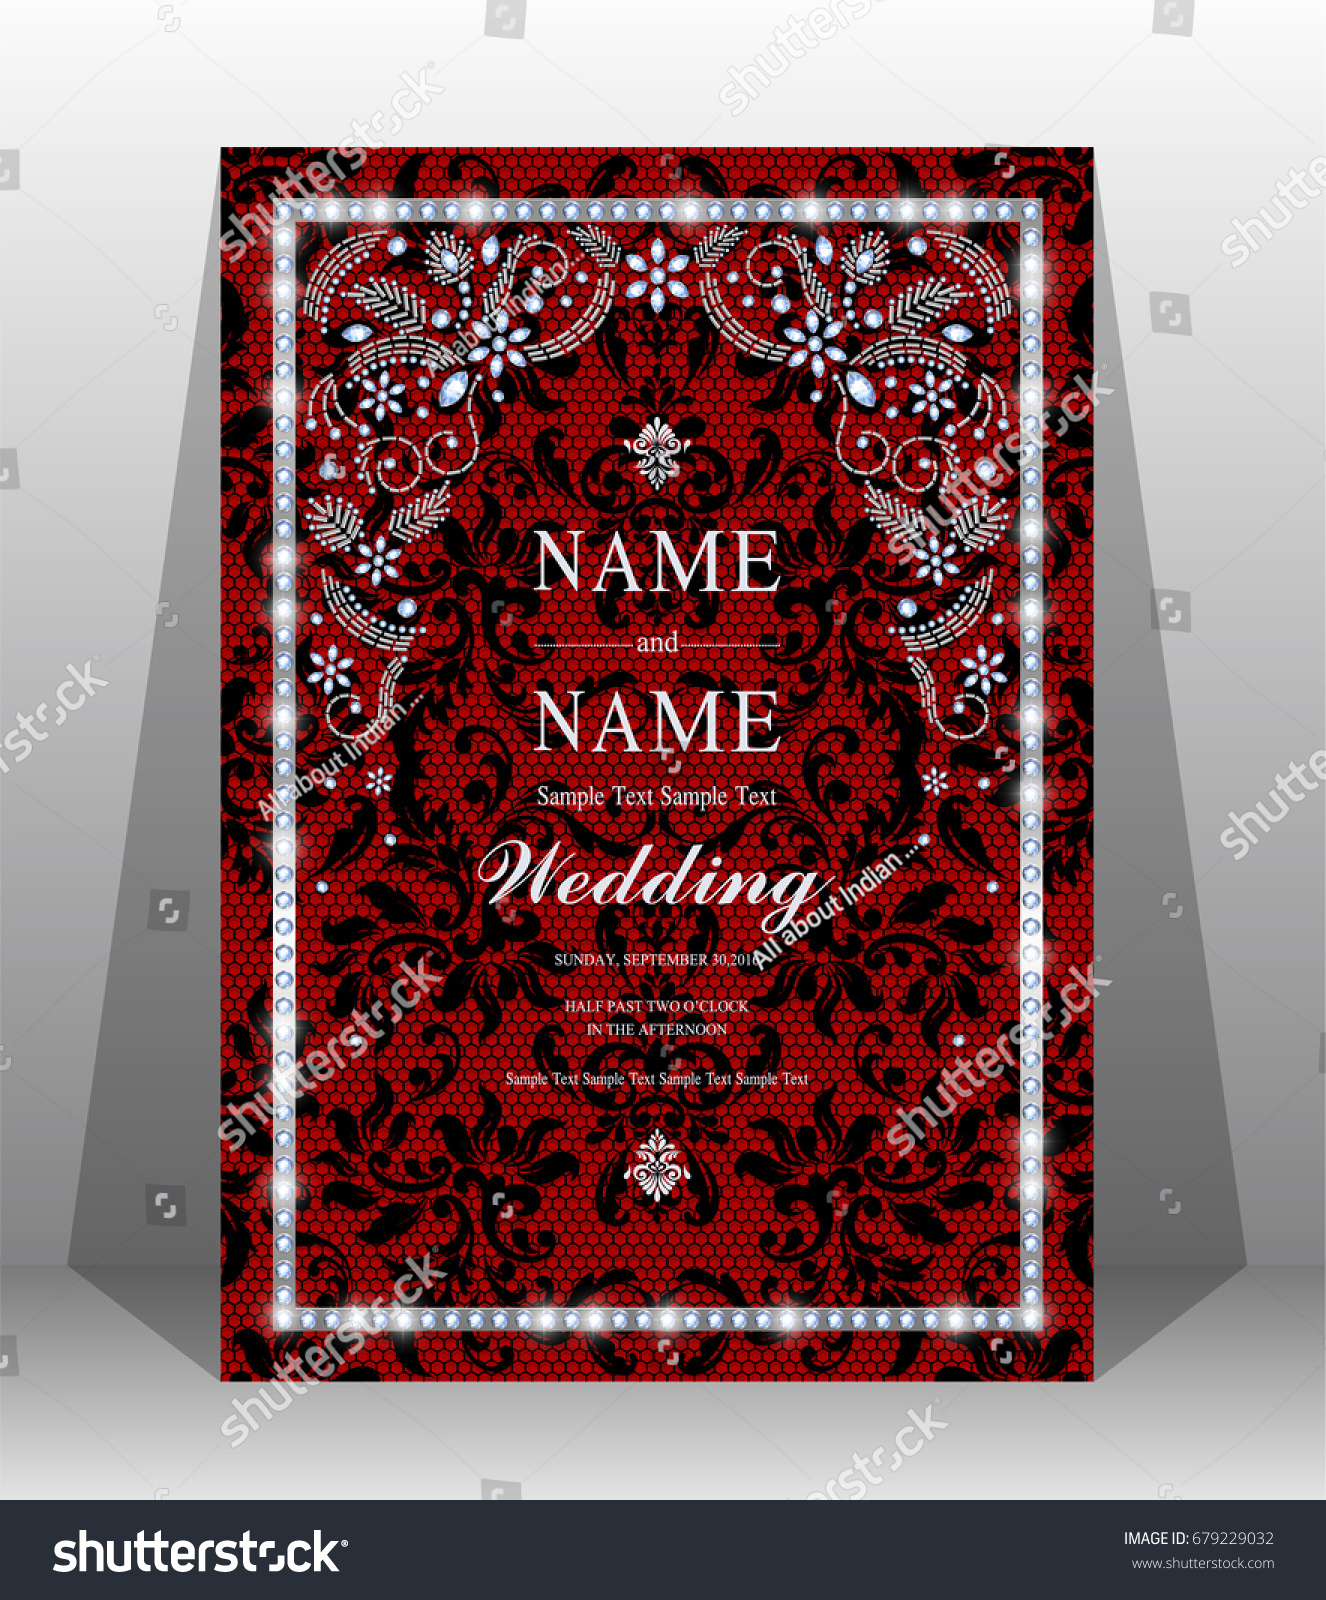 Luxury Wedding Invitation Card Haute Couture Stock Vector (Royalty ...